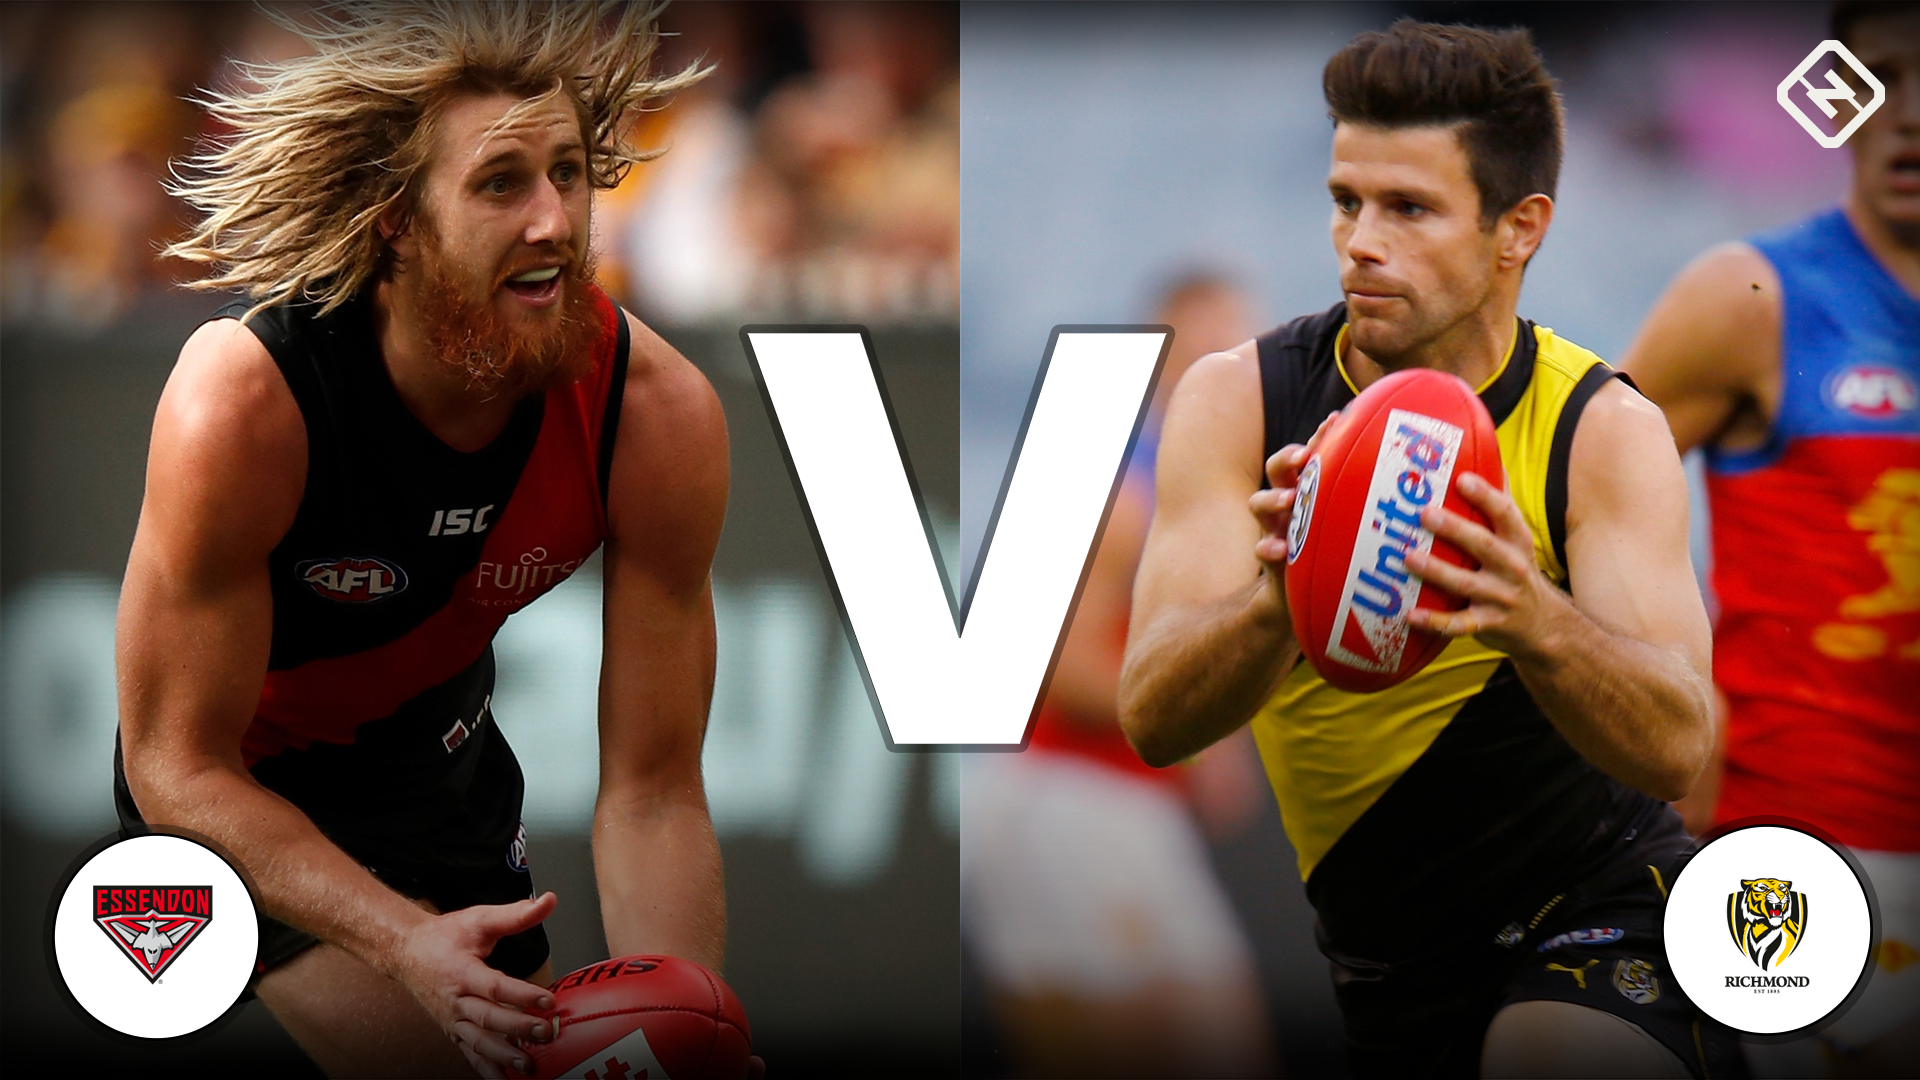 essendon vs richmond - photo #28